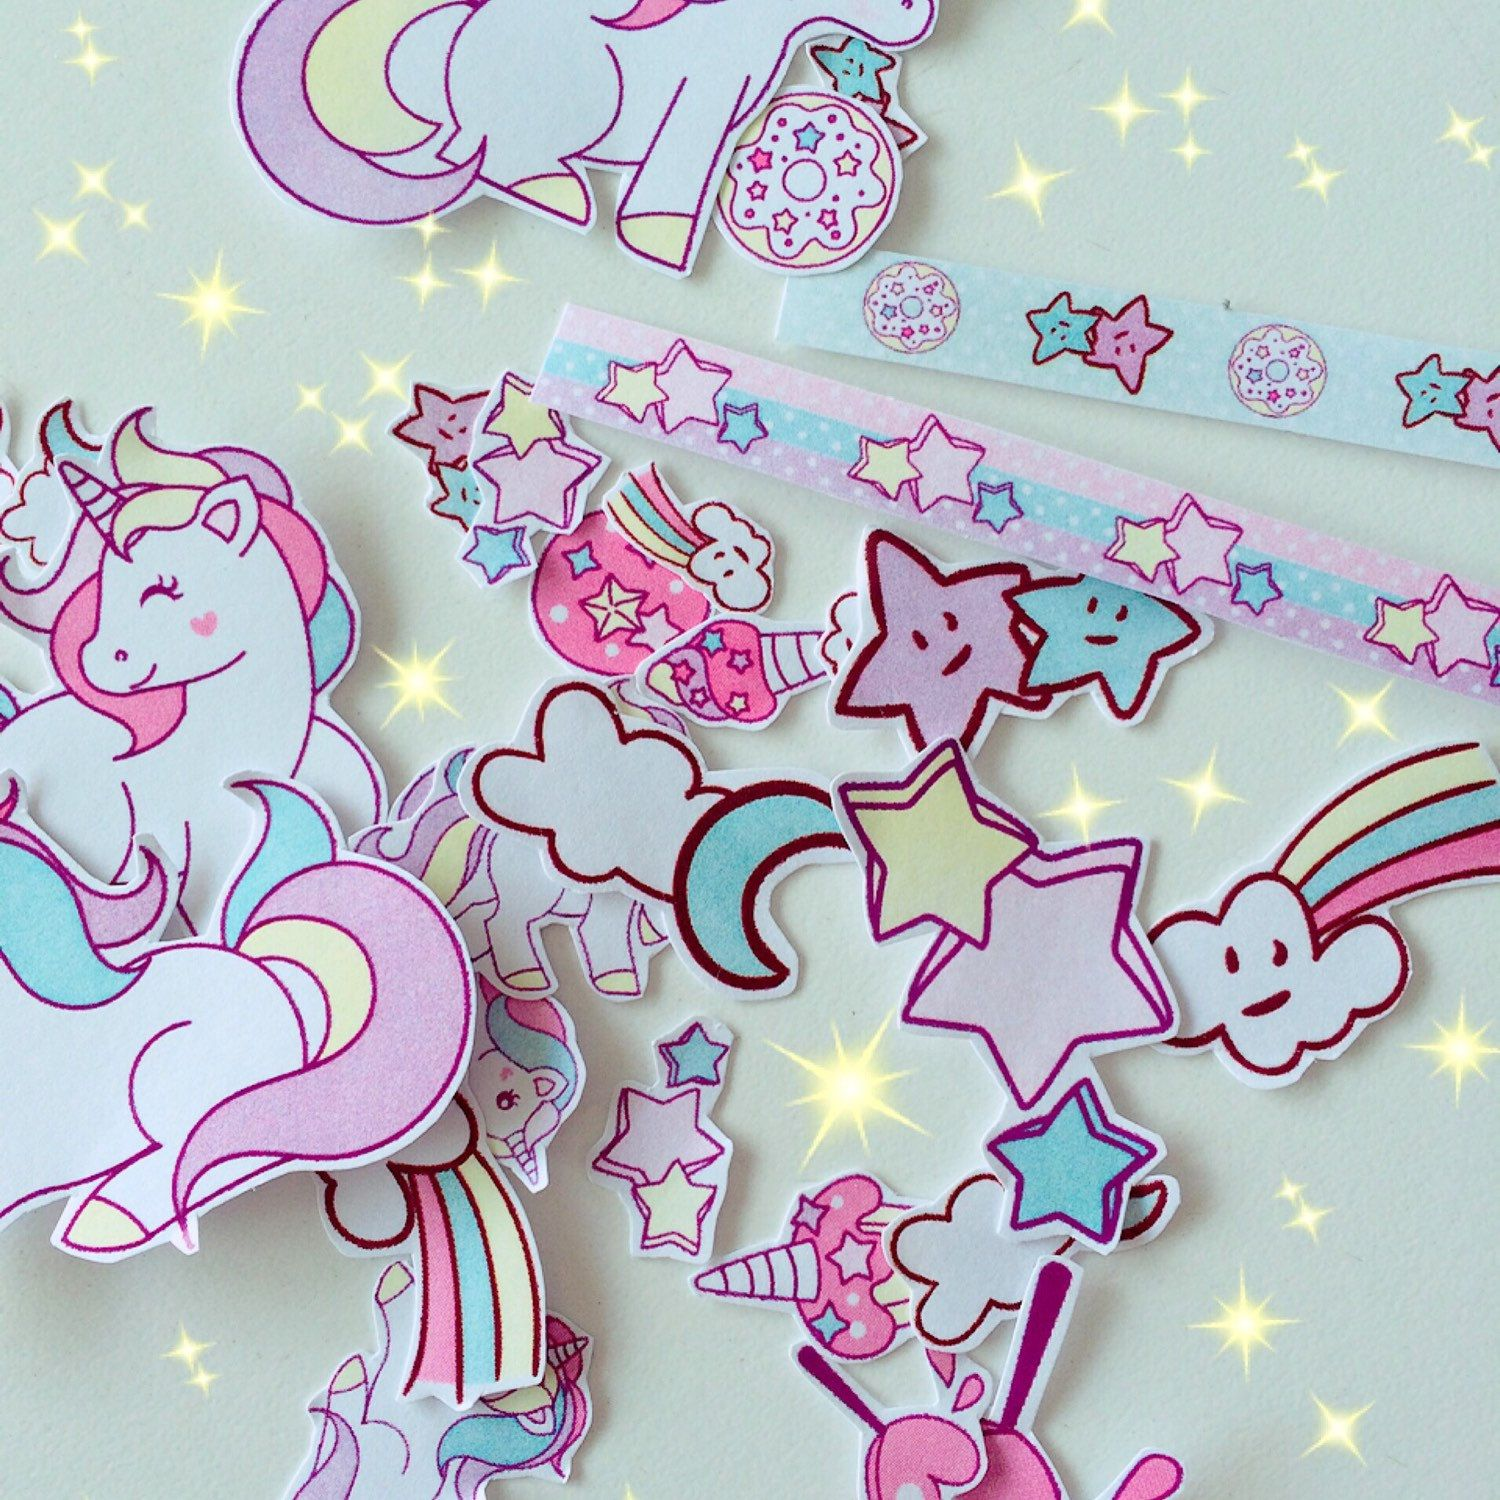 Unicorns & rainbows on my way! Magic stickers full of colors and cutenes :)